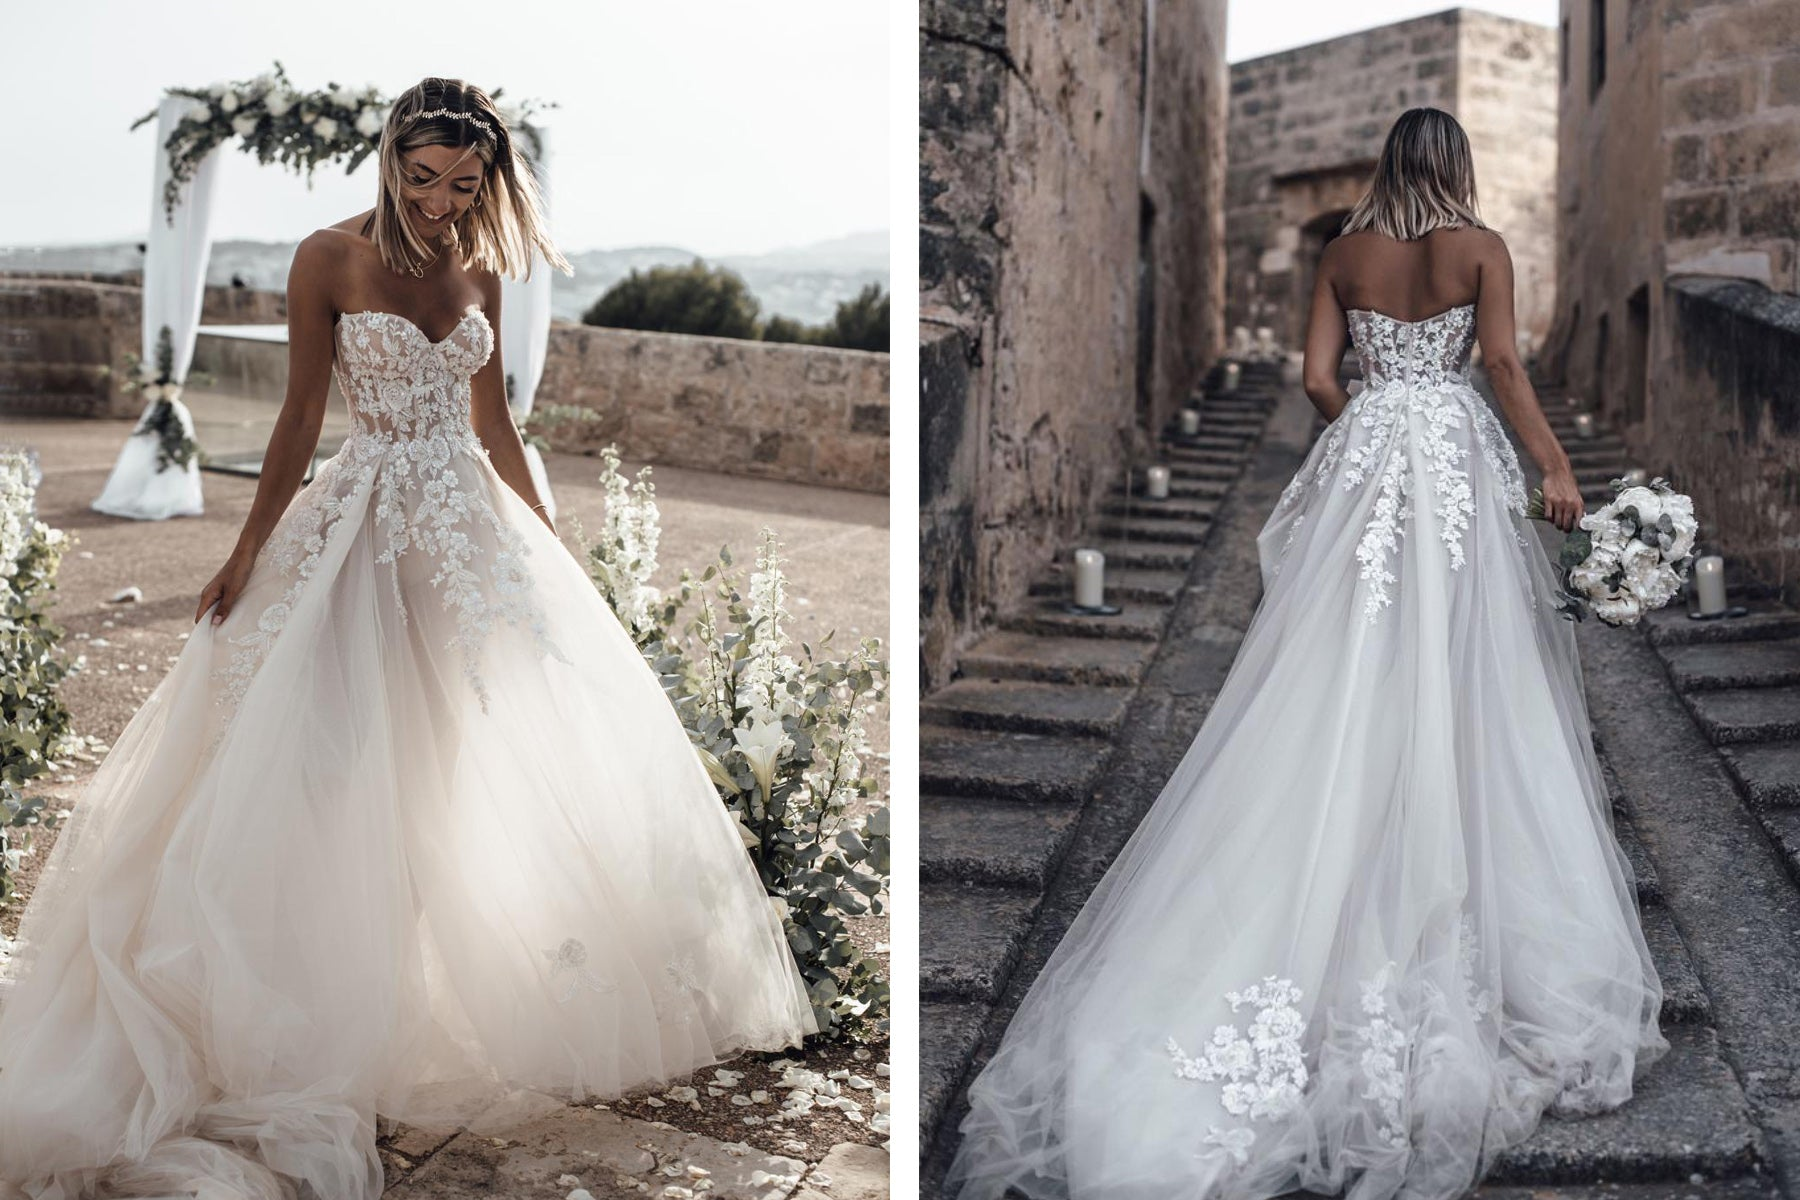 Eternal_Bridal_Bride_Crush_Top_5_Galia_Lahav_Brides_Aylin